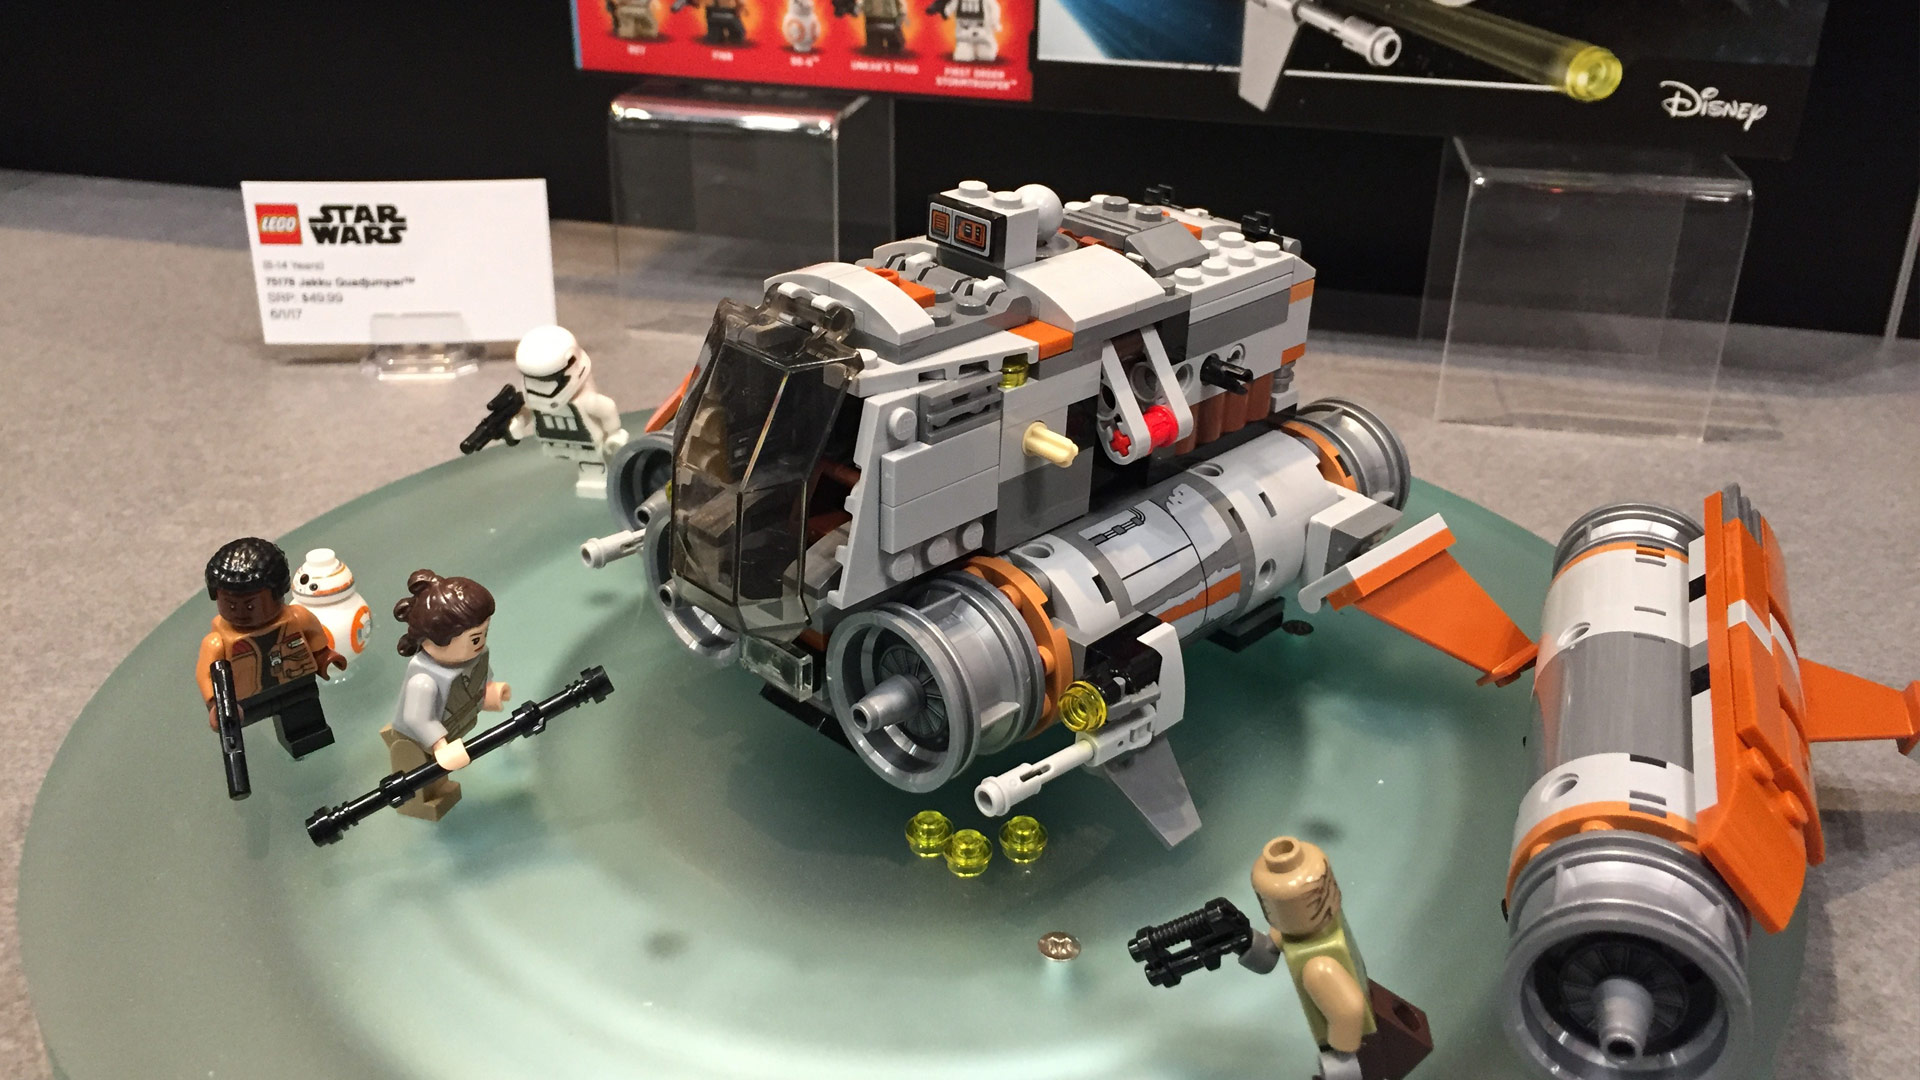 LEGO Star Wars Set 75178 Jakku Quad Jumper at Toy Fair 2017